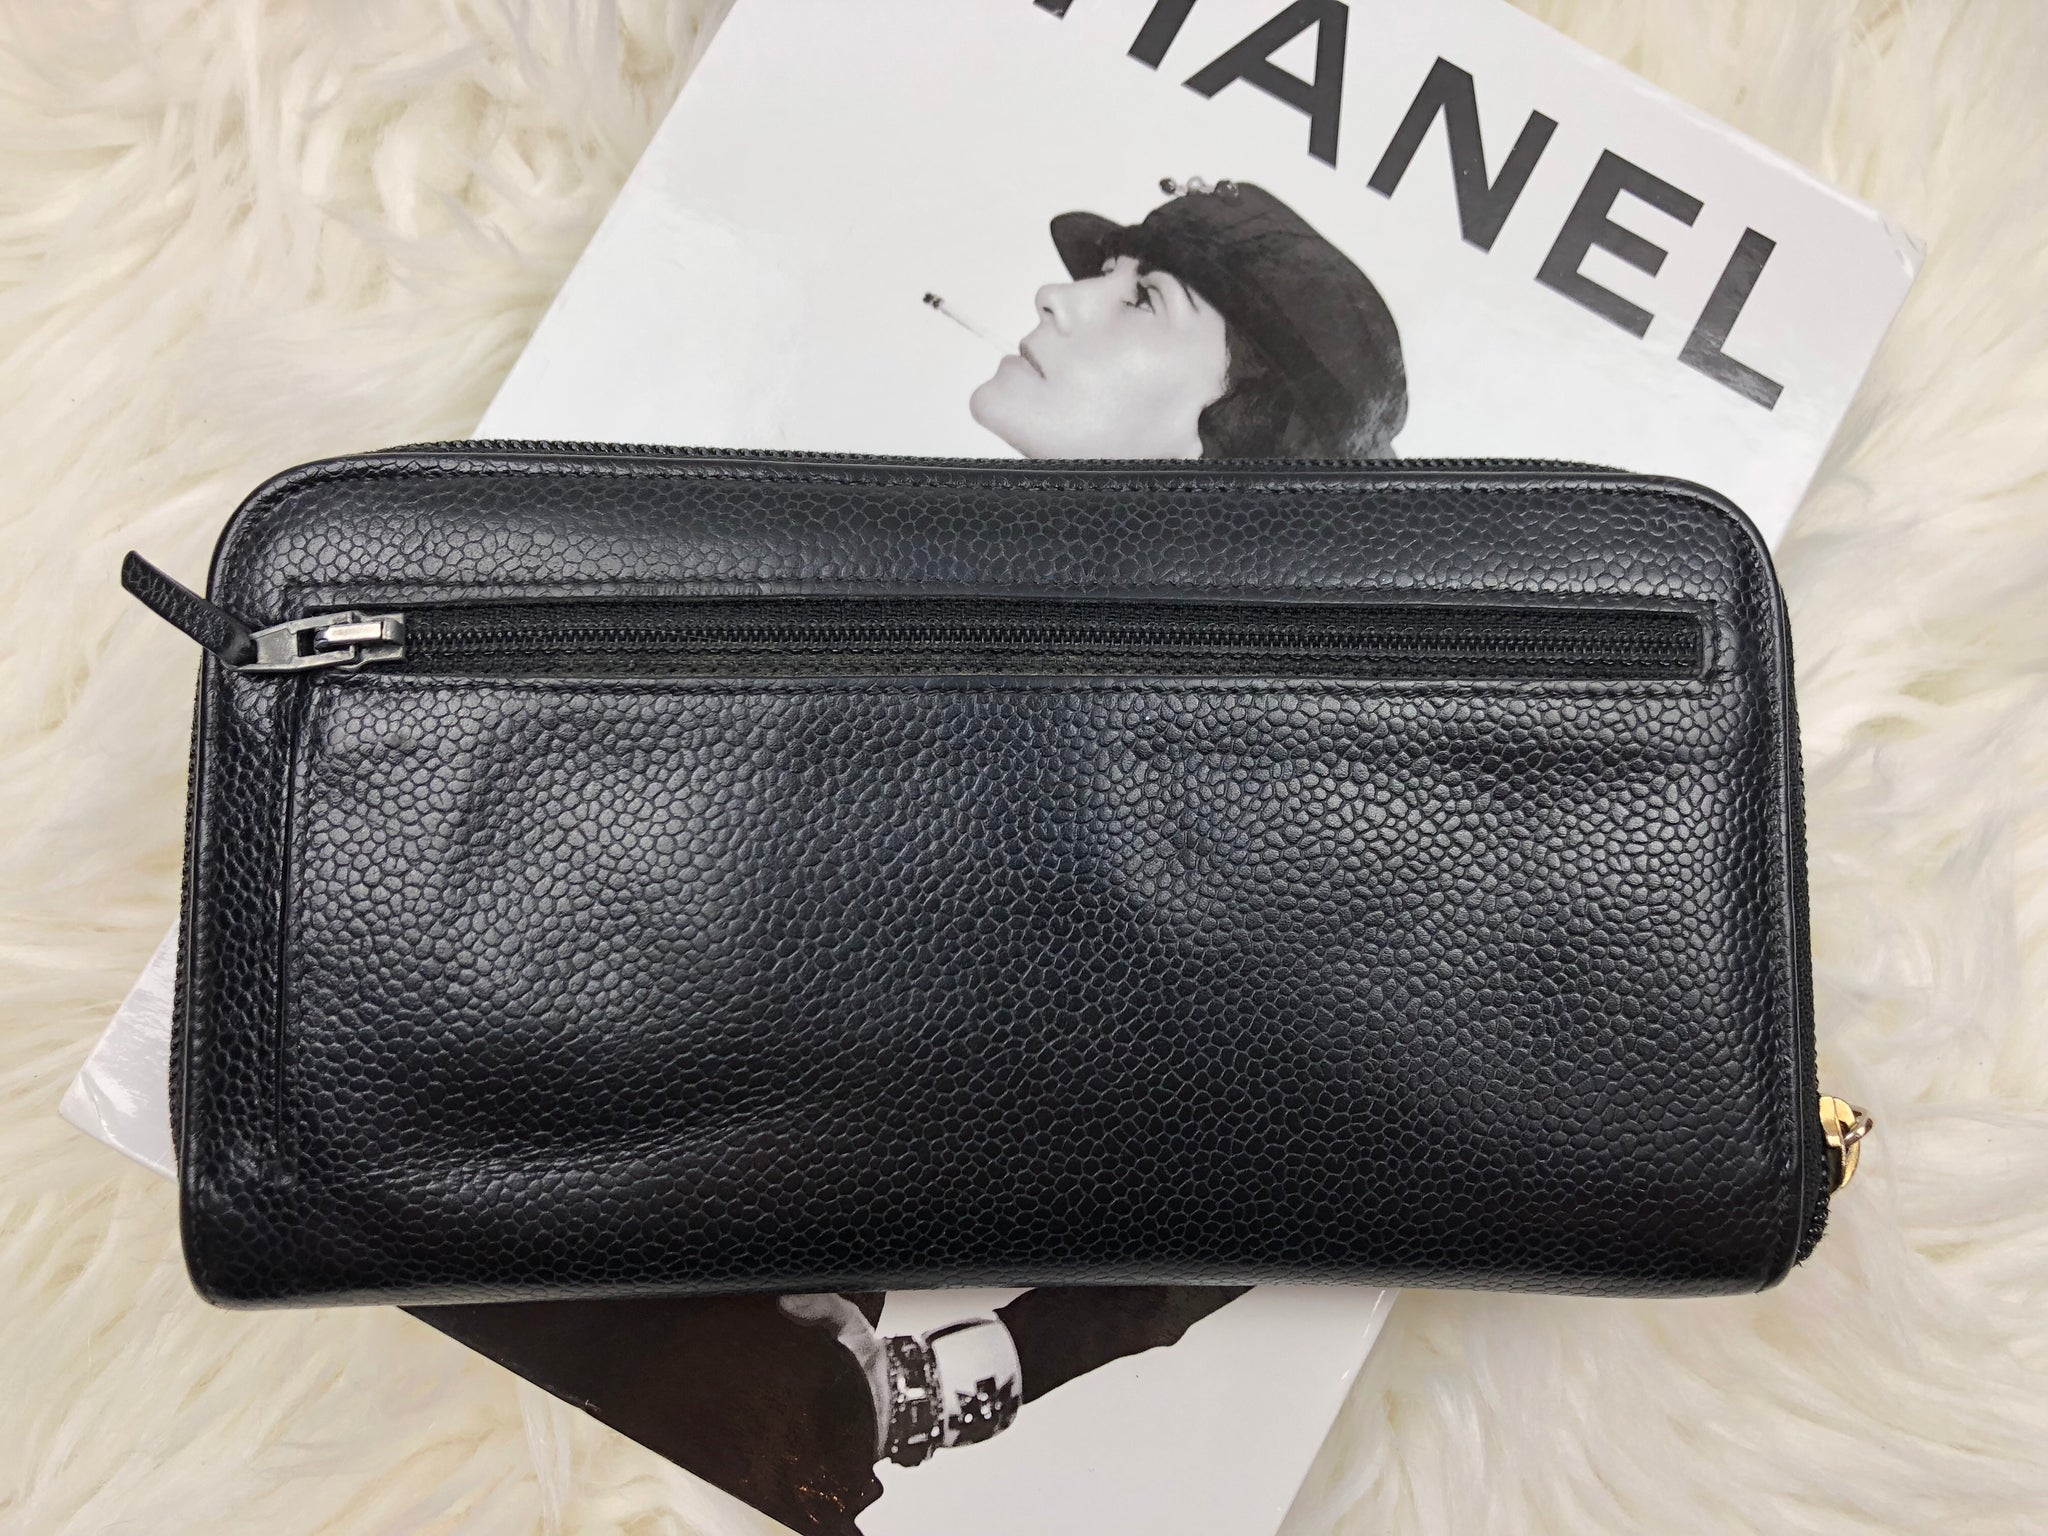 CHANEL Caviar Leather Black CC Zippy Wallet